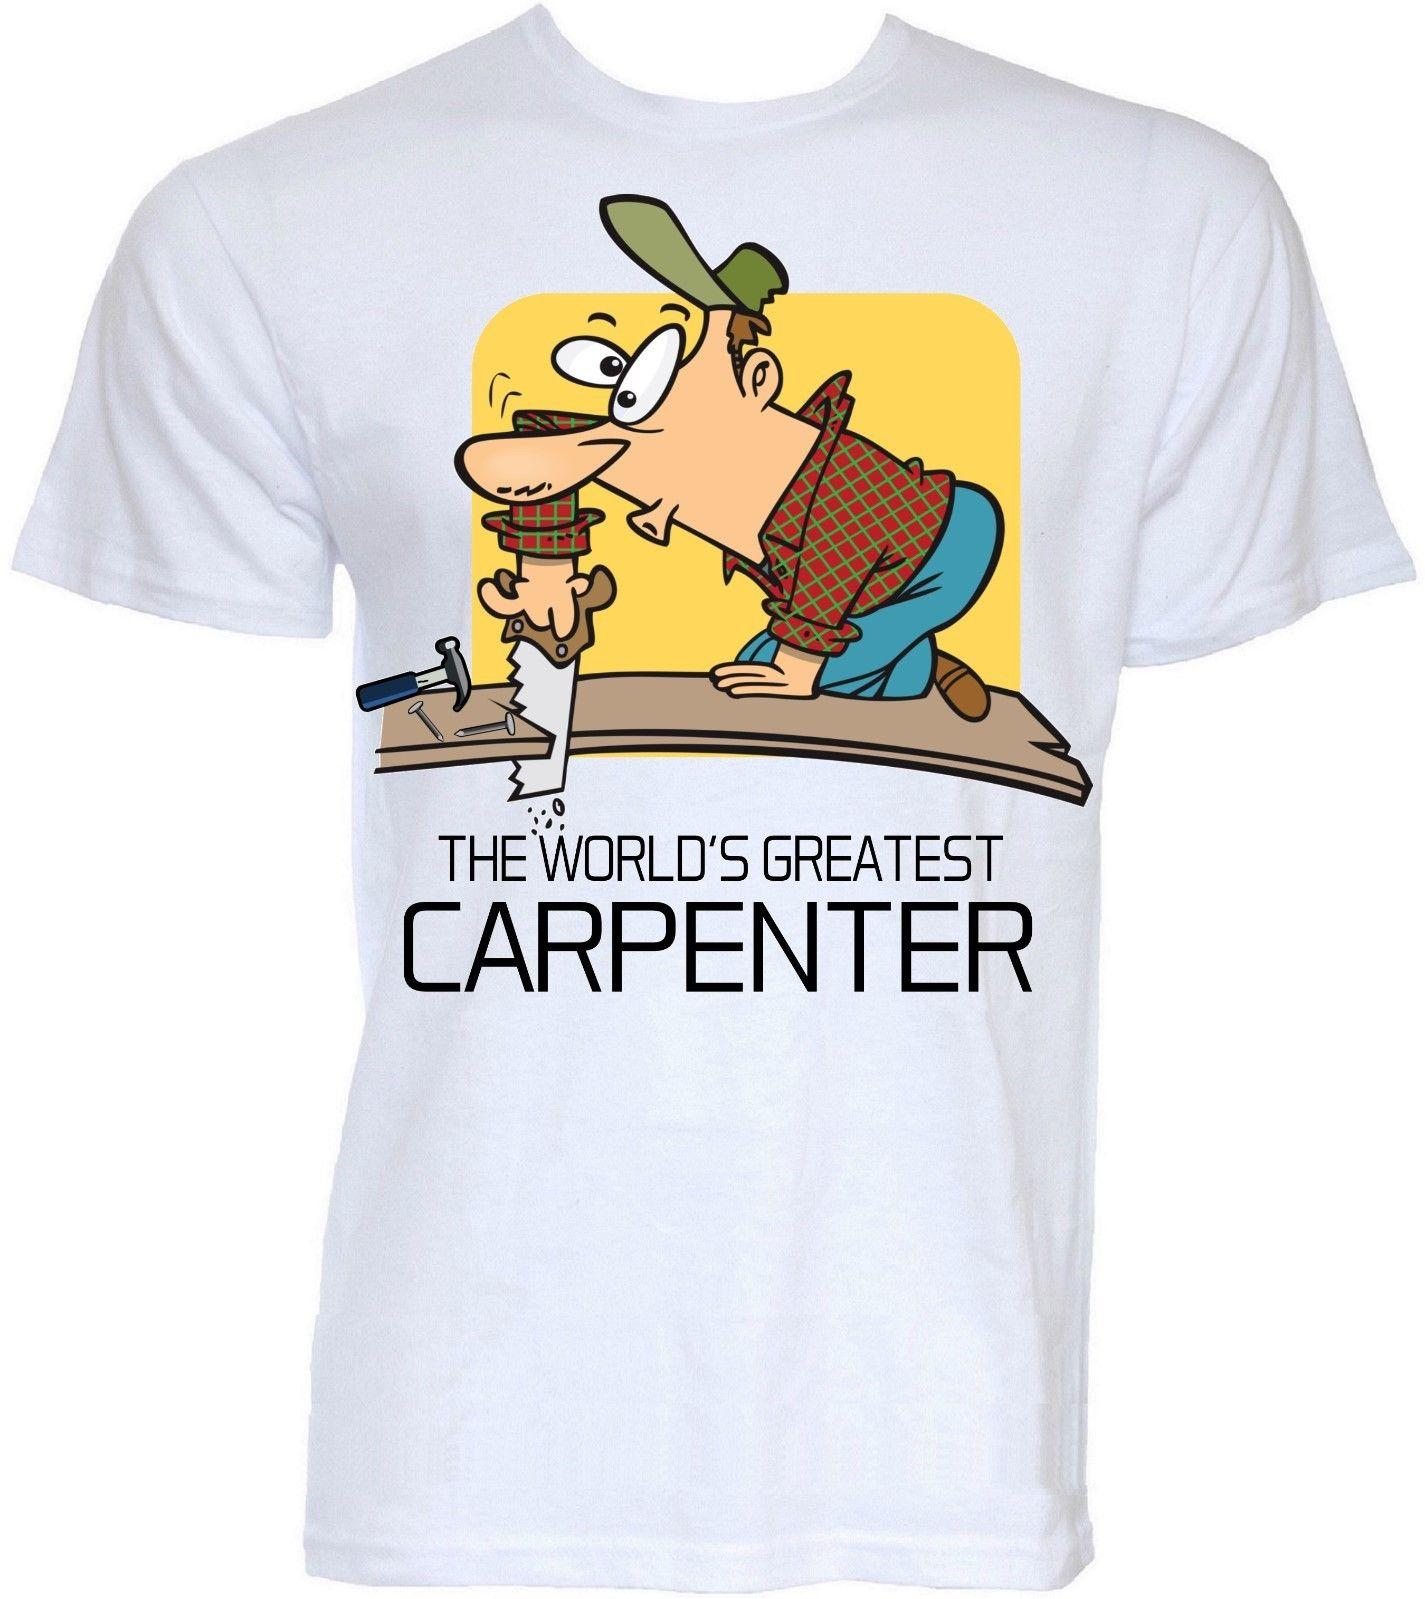 642dca80 Carpenter T Shirts Mens Funny Cool Novelty Joke Carpentry Carpenters Gifts  Ideas Unisex Casual Tshirt Top Cotton Shirts White T Shirts From  Culturepress, ...